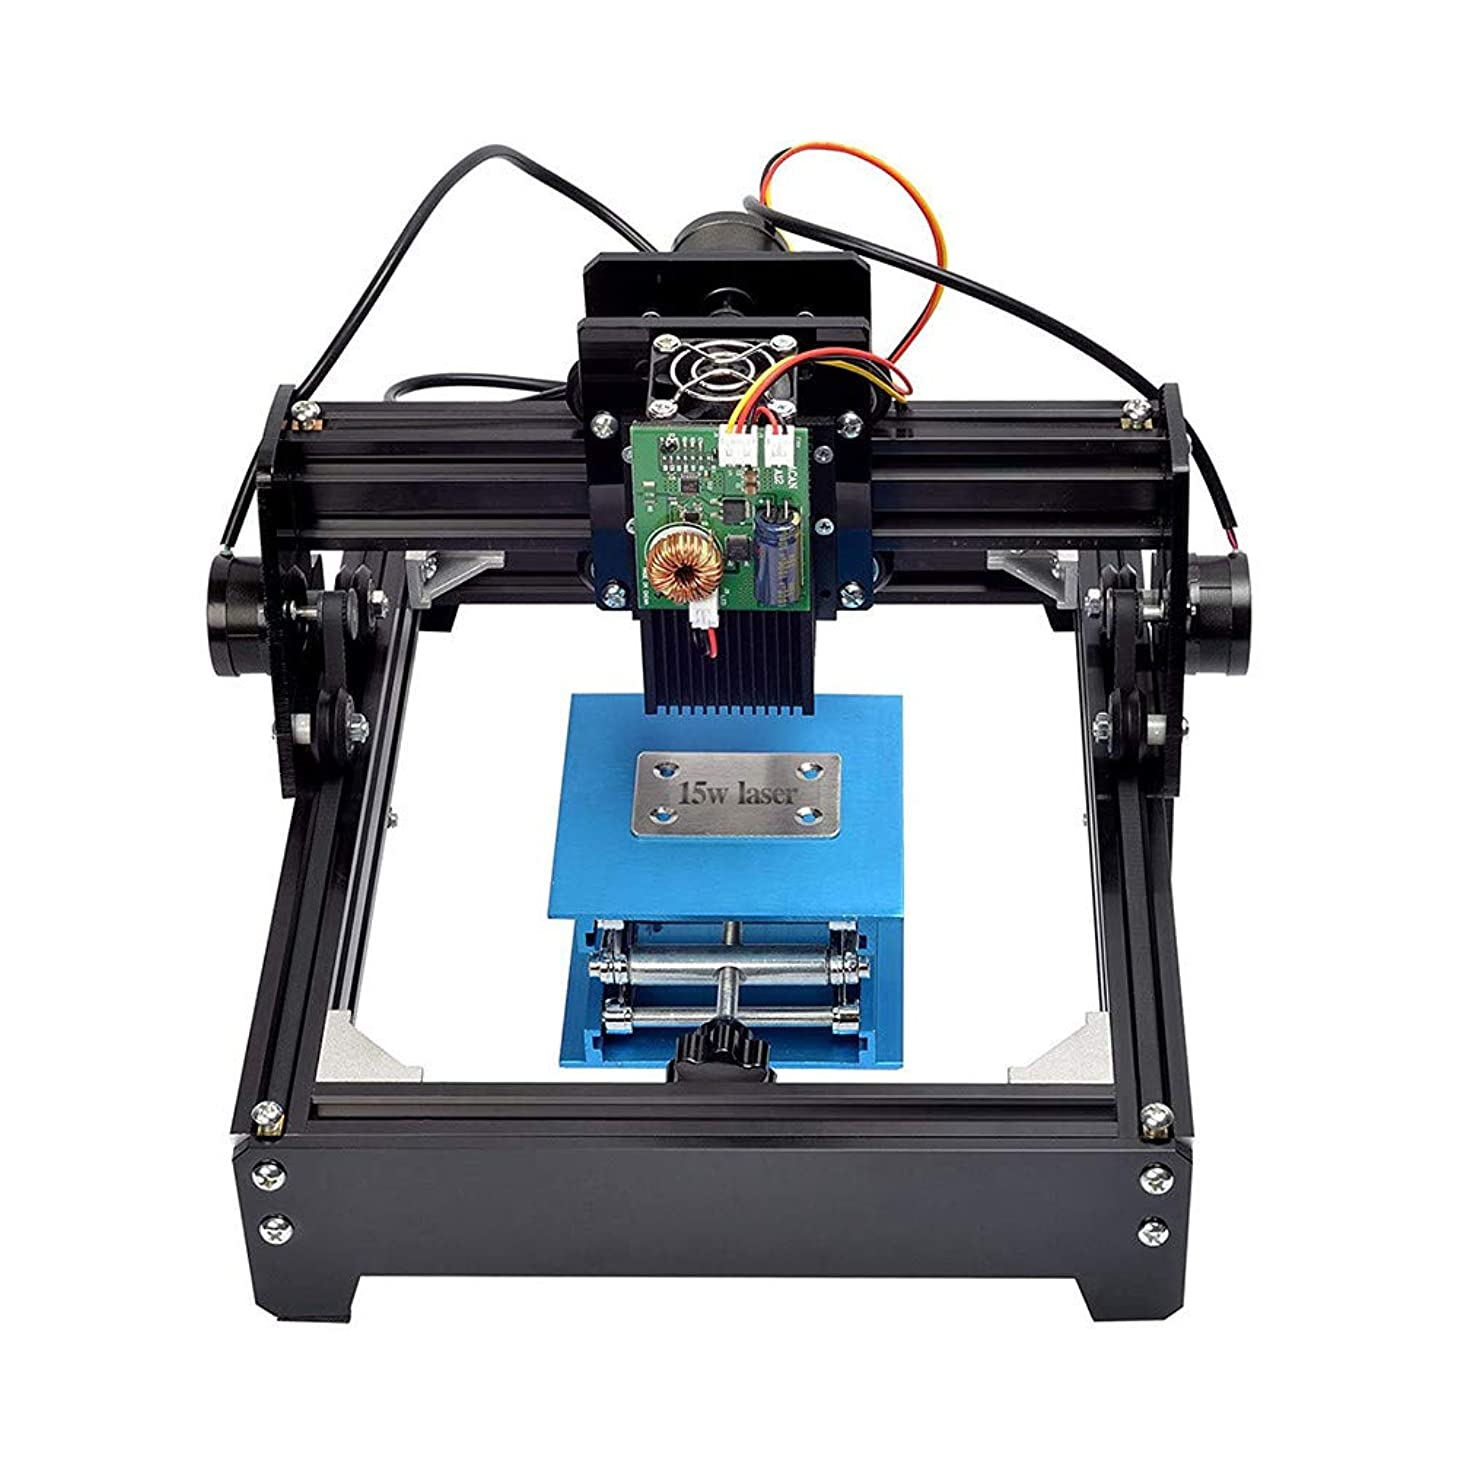 4YANG 15W Mini Laser Engraver, High Speed USB DIY Engraving Machine with High Power Pulsed Laser for Metal Steel Iron Stone Wood Marking Used As Logo Printer